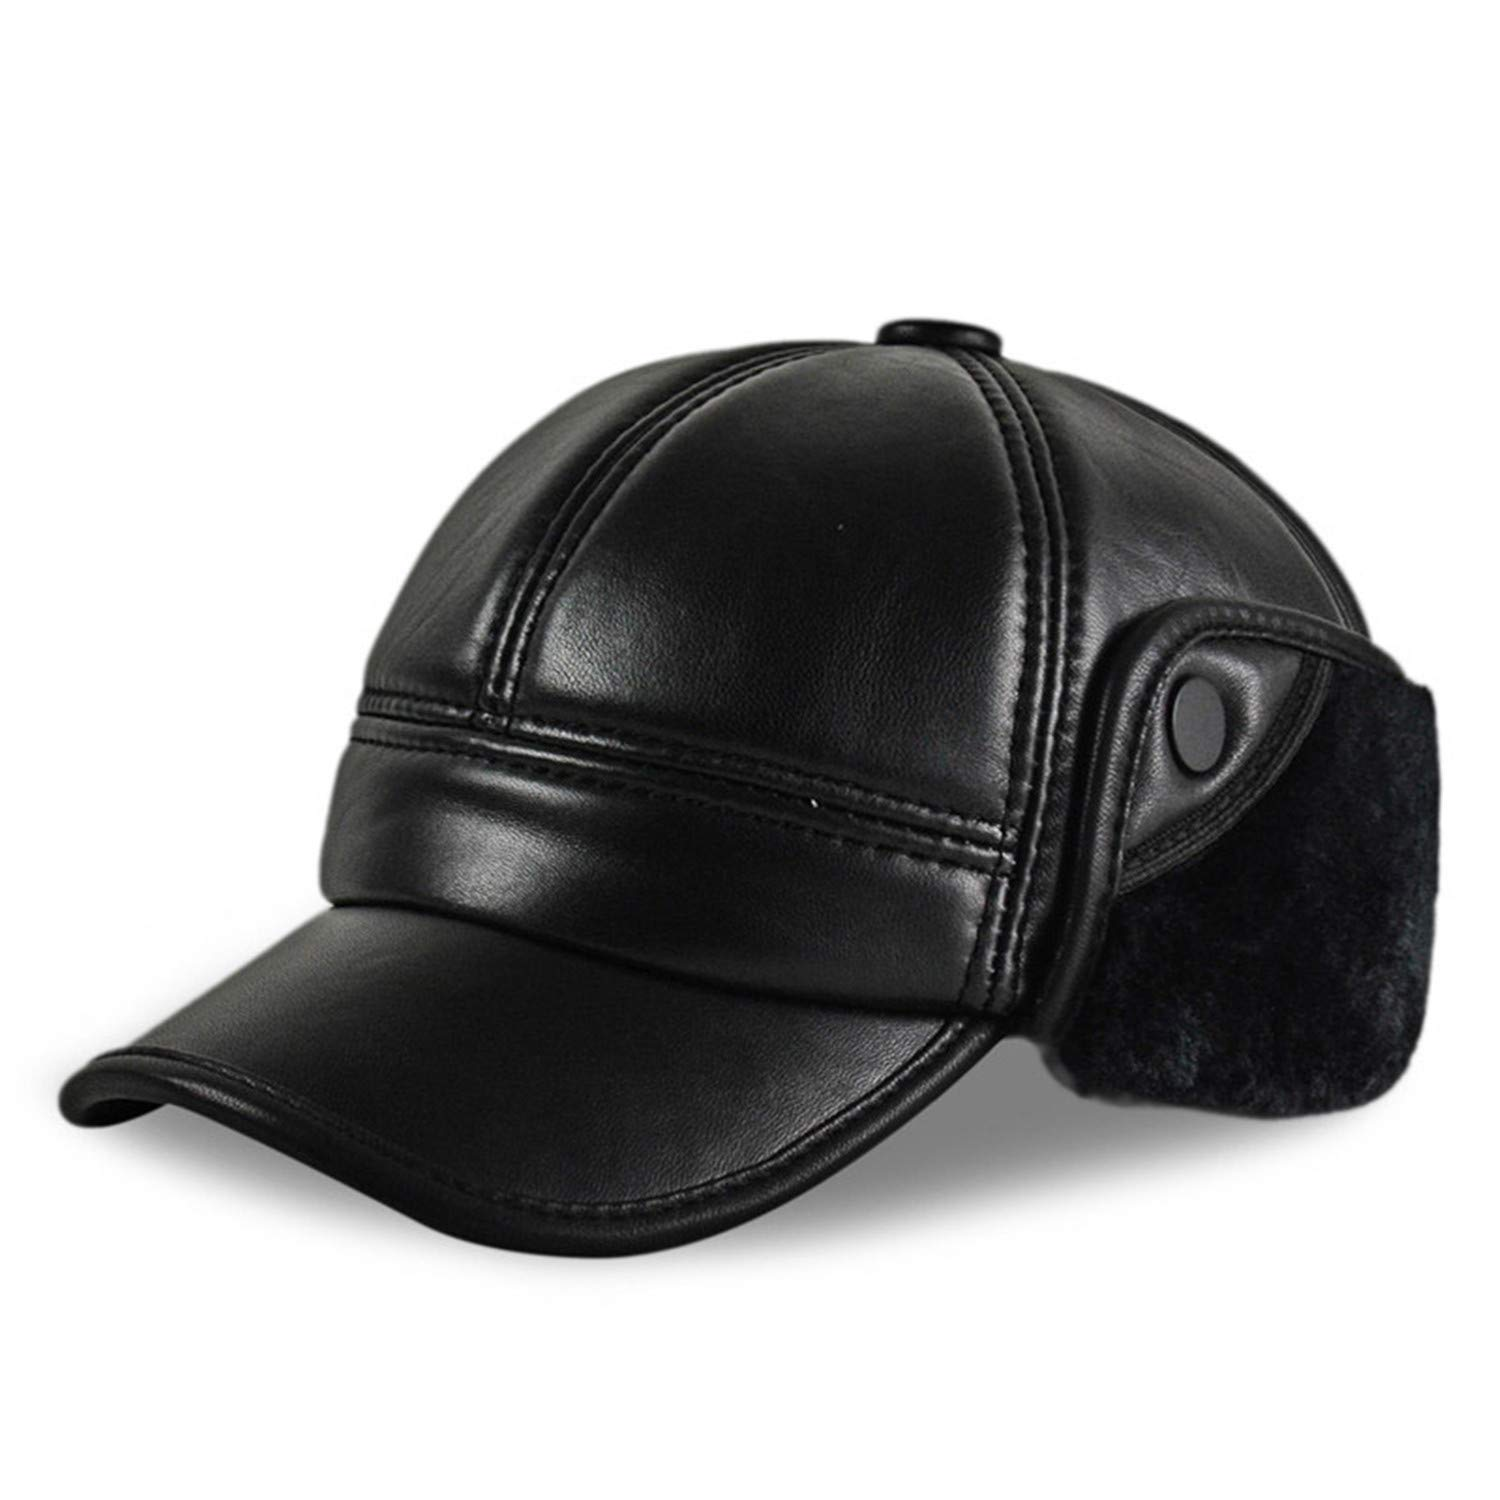 f1aa2ba26855df Genuine Leather Baseball Cap Hat Men's Winter Cow Skin Leather Hats Caps  Black with Faux Fur Inside Men's Hat at Amazon Men's Clothing store: